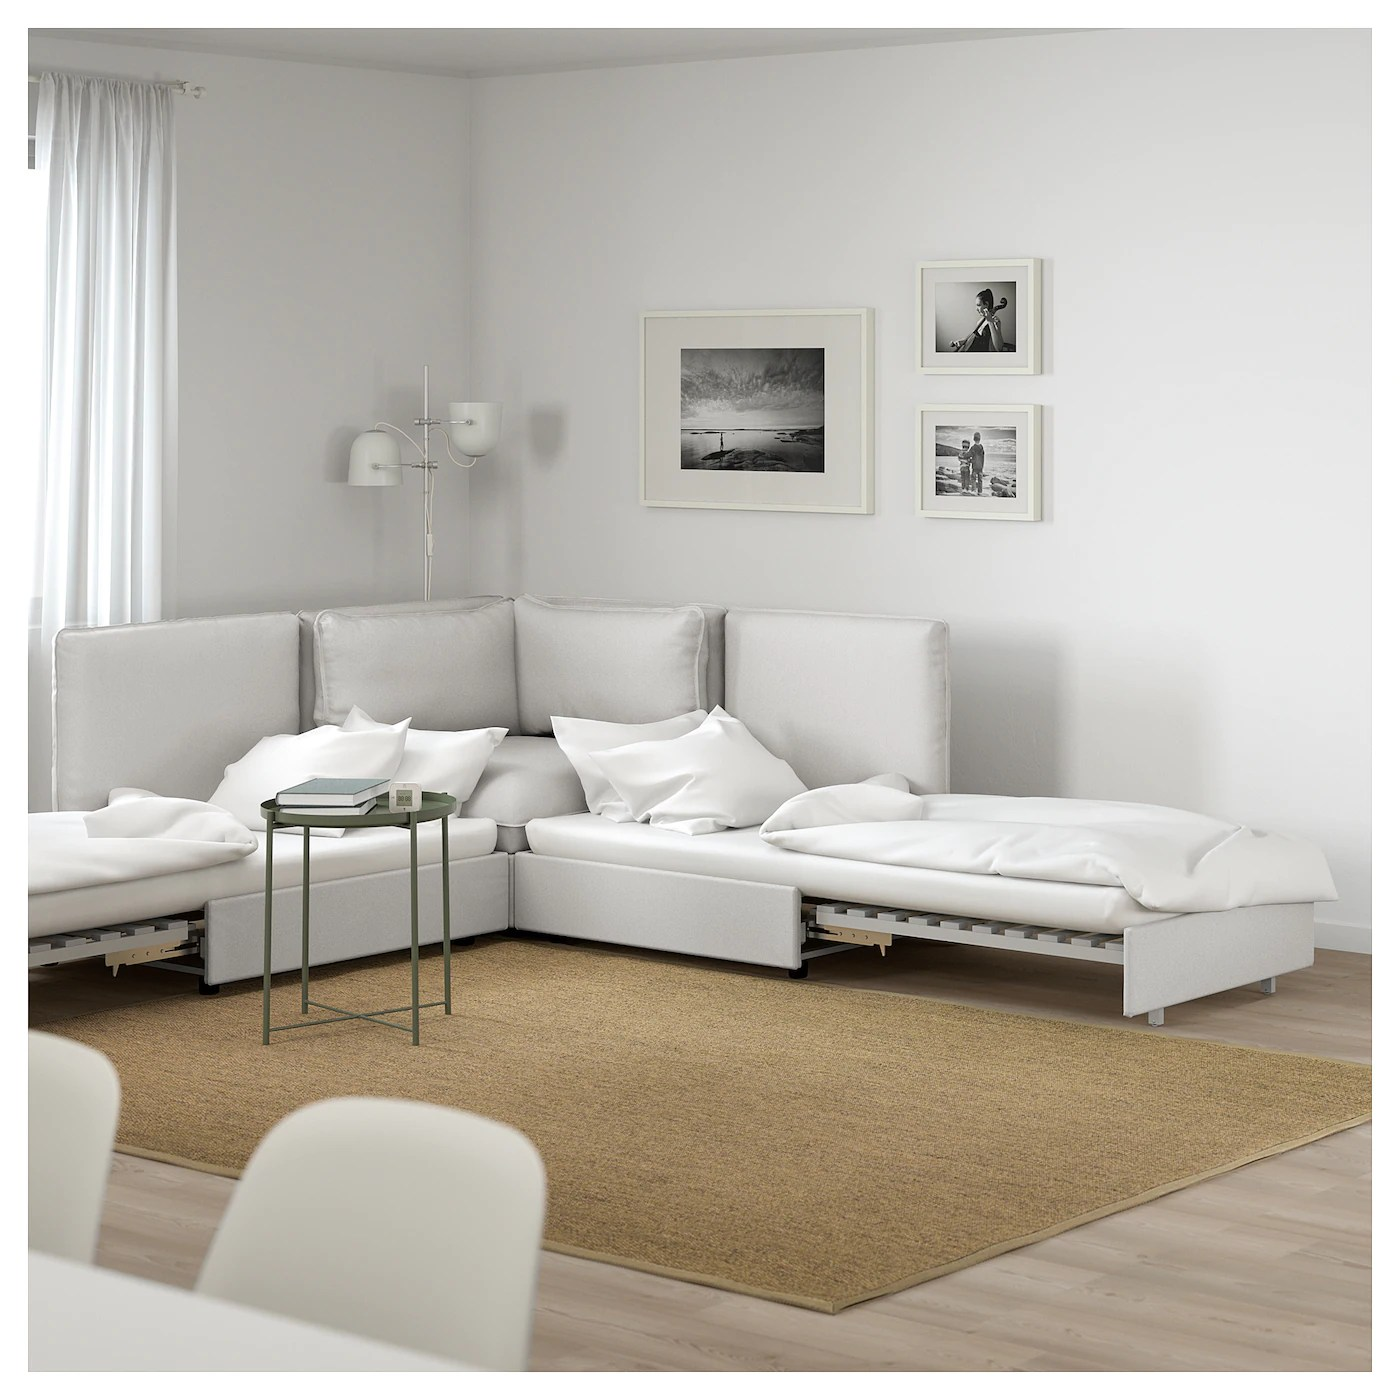 Vallentuna 4 Seat Modular Sofa With 3 Beds Corner Sofa Bed In Grey U00a3415 Inspirational Interior Style